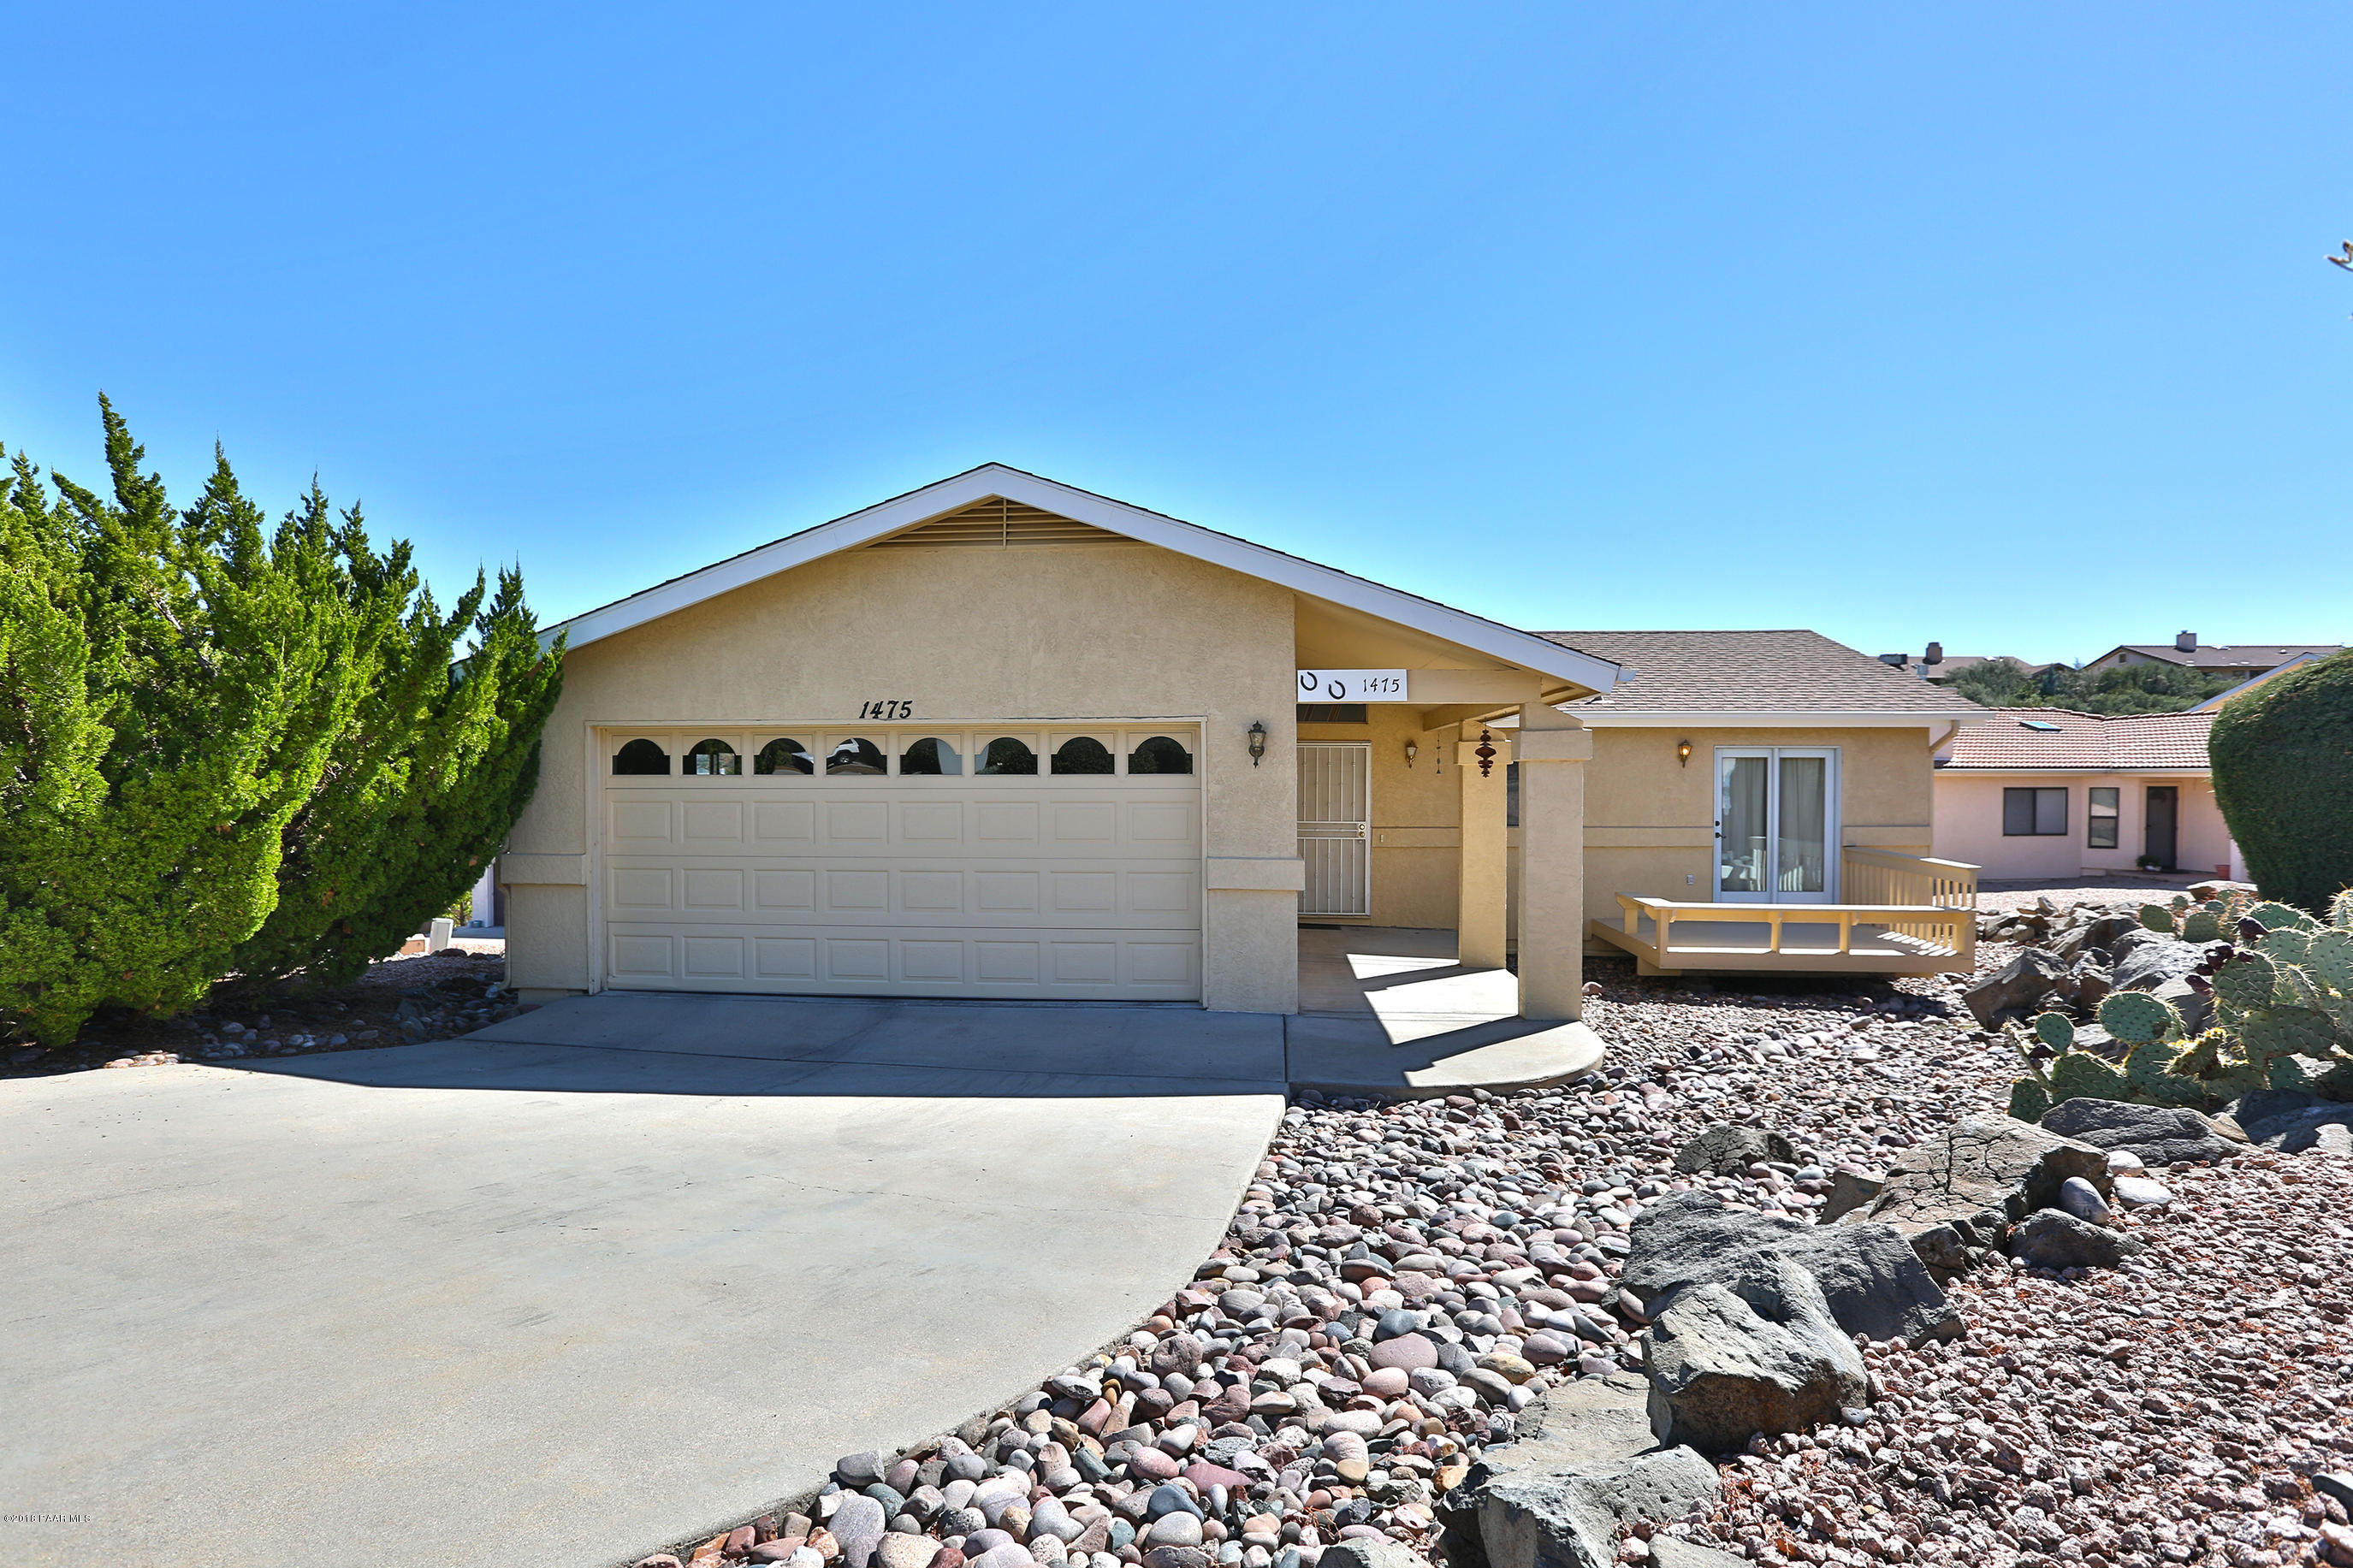 Photo of 1475 Marvin Gardens, Prescott, AZ 86301